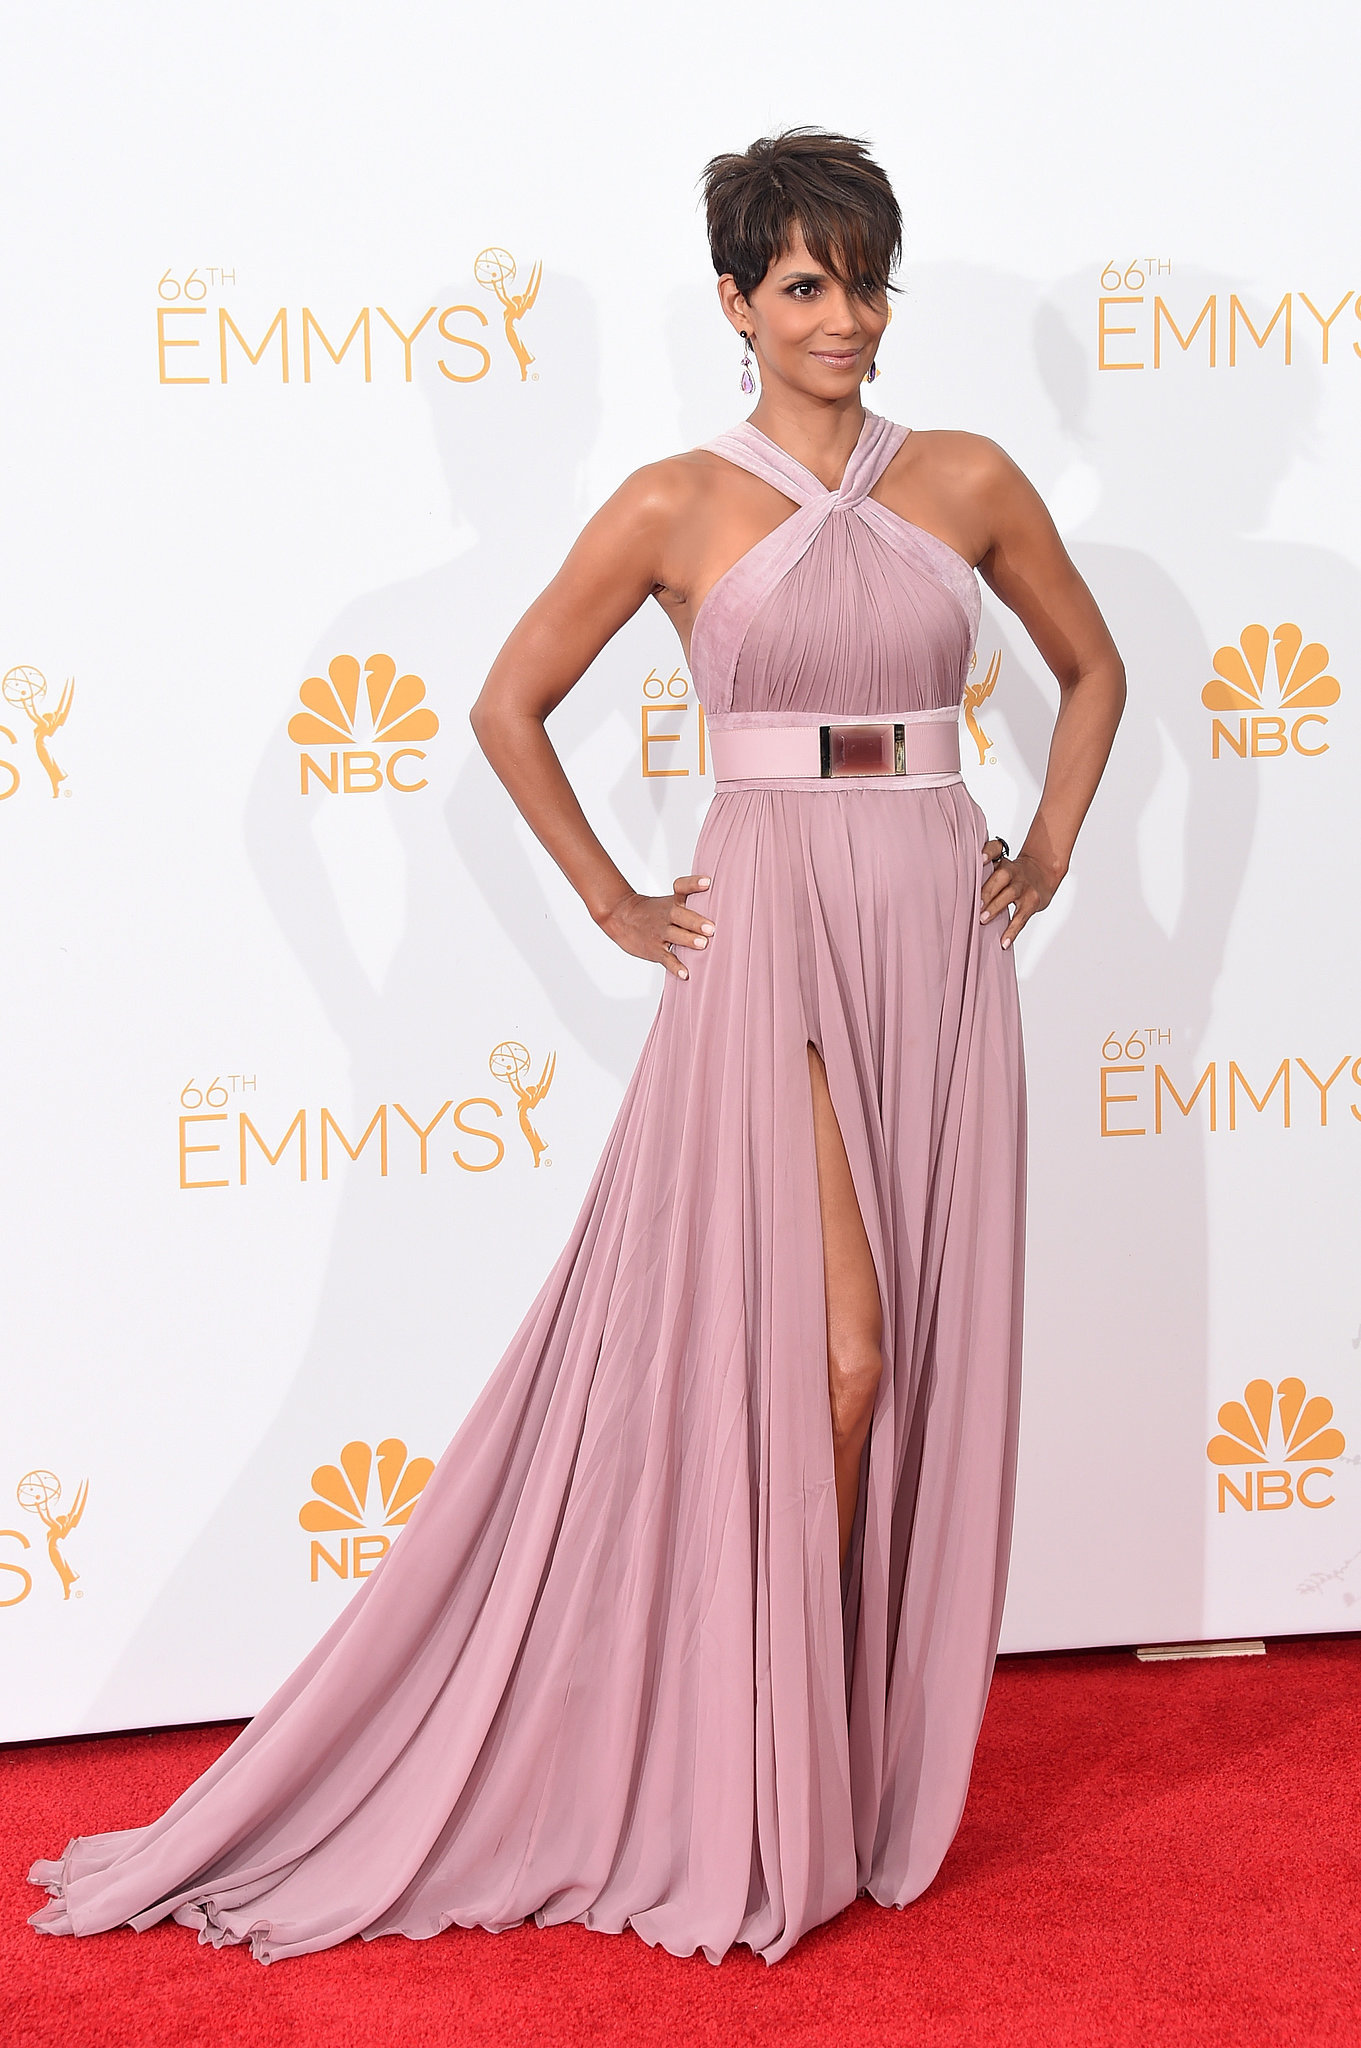 Halle Berry in a halter pink chiffon gown with velvet trim details and a thigh-high slit. She styled her look with Doves amethyst and mother of pearl earrings along with a Sutra sapphire ring .